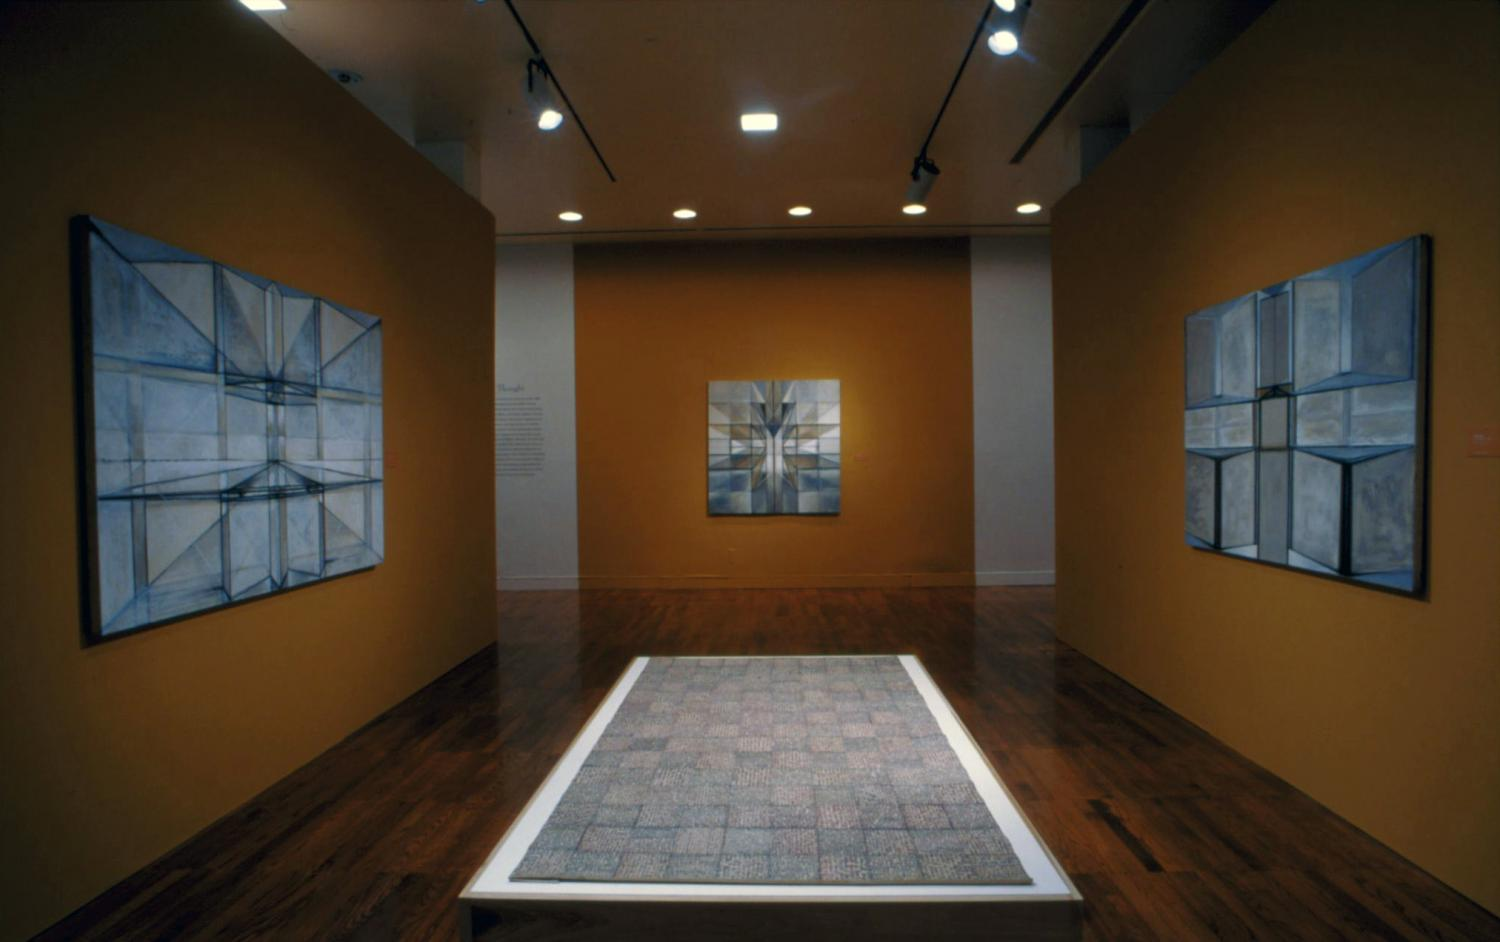 Uninterrupted Flux: Hedda Sterne, A Retrospective, installed at Krannert Art Museum, 2006.